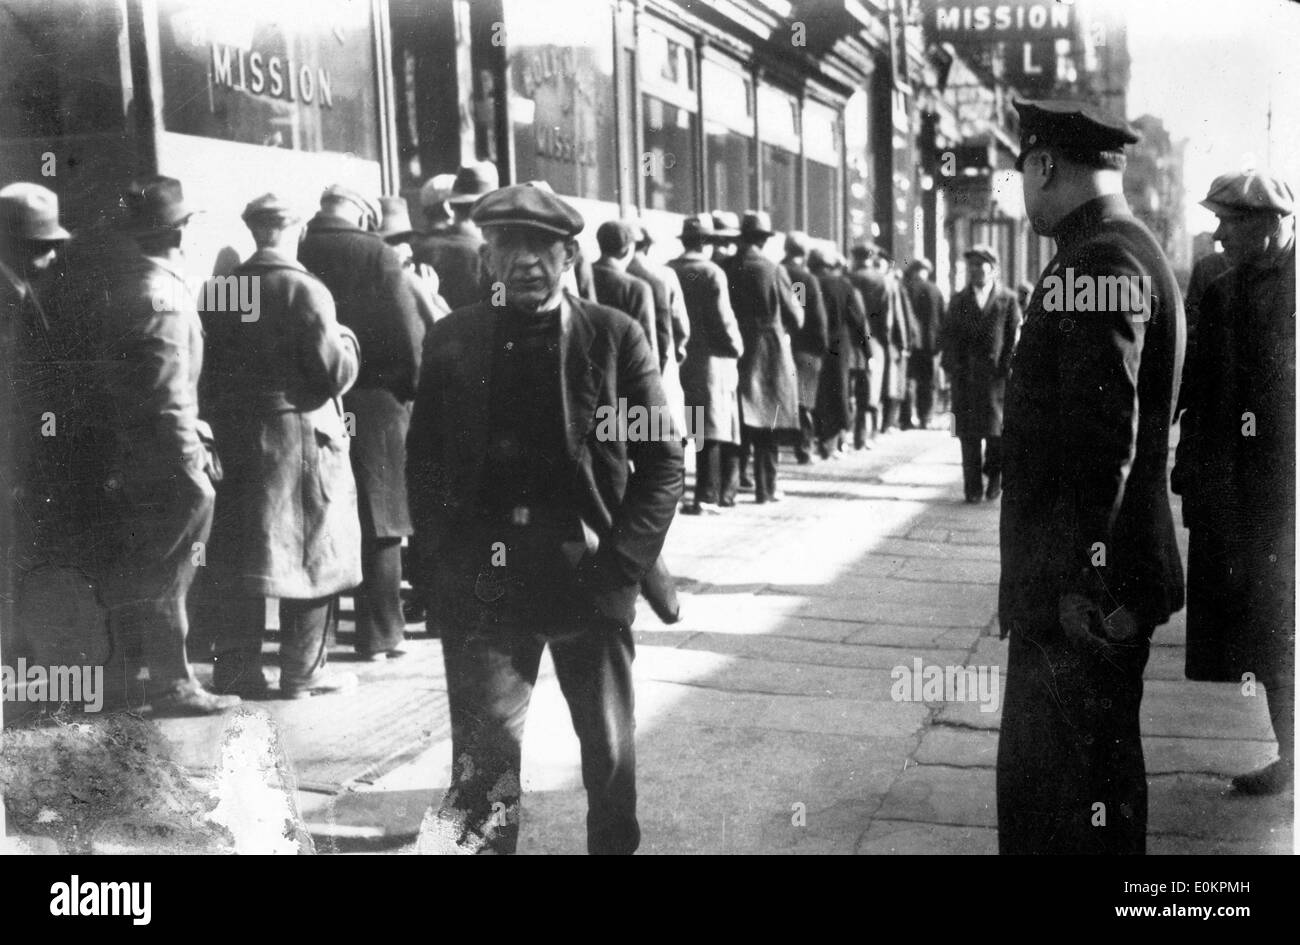 people awaiting food during the great depression stock photo  people awaiting food during the great depression